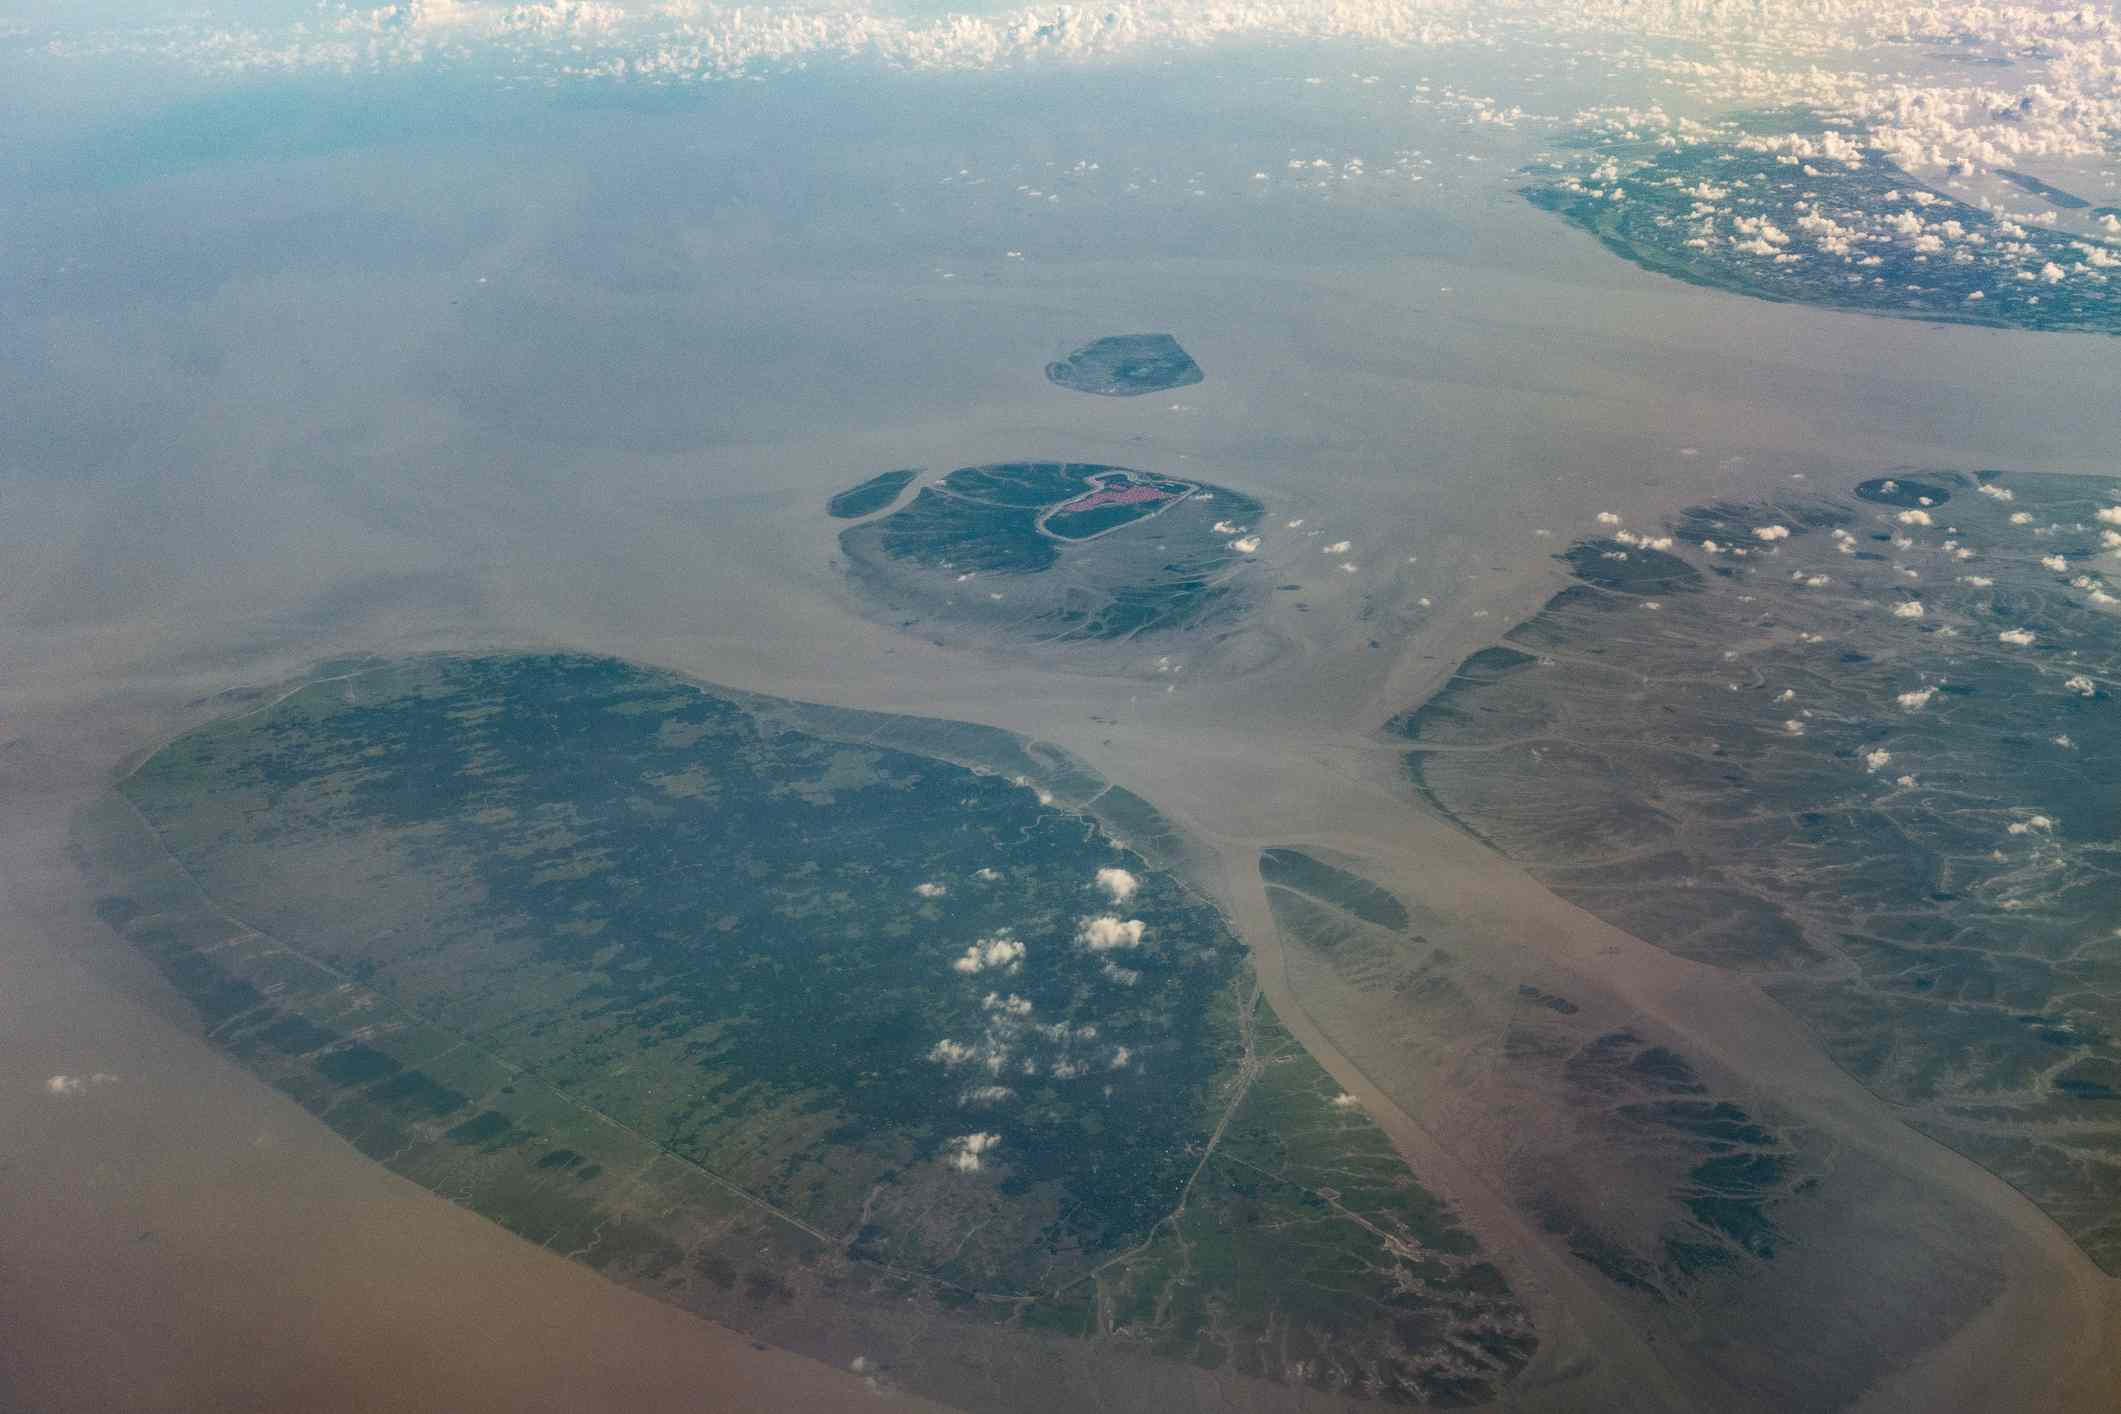 An aerial image of Char Piya, previously called Thengar Char, located in the Bay of Bengal,